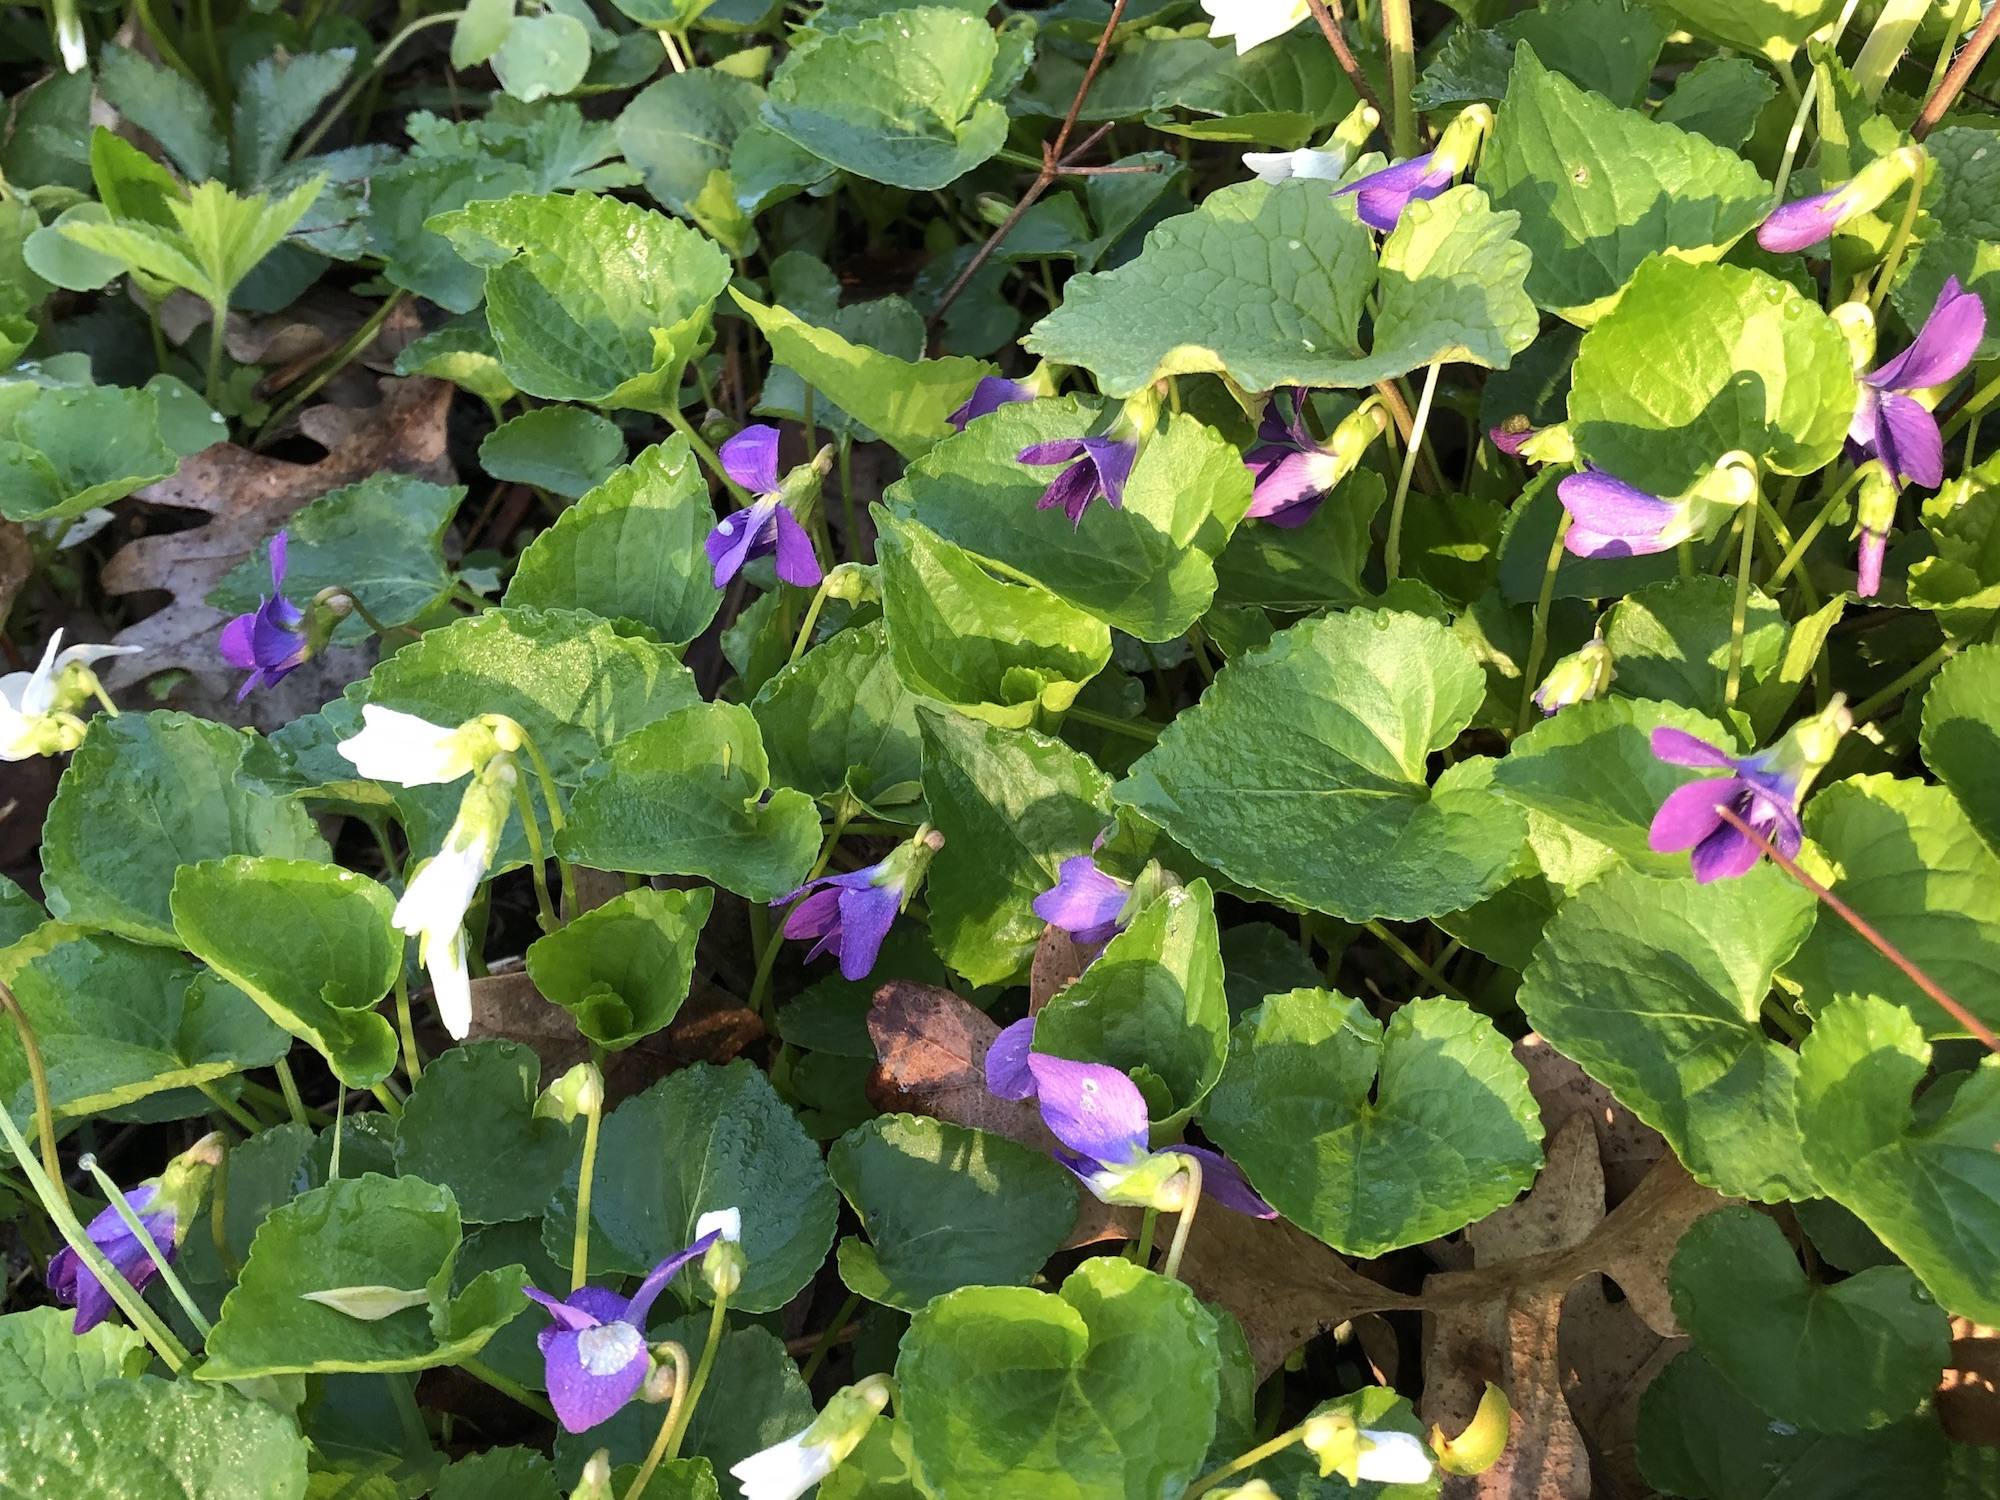 Wood Violets near Council Ring, the Oak Savanna and the Duck Pond on May 3, 2019.